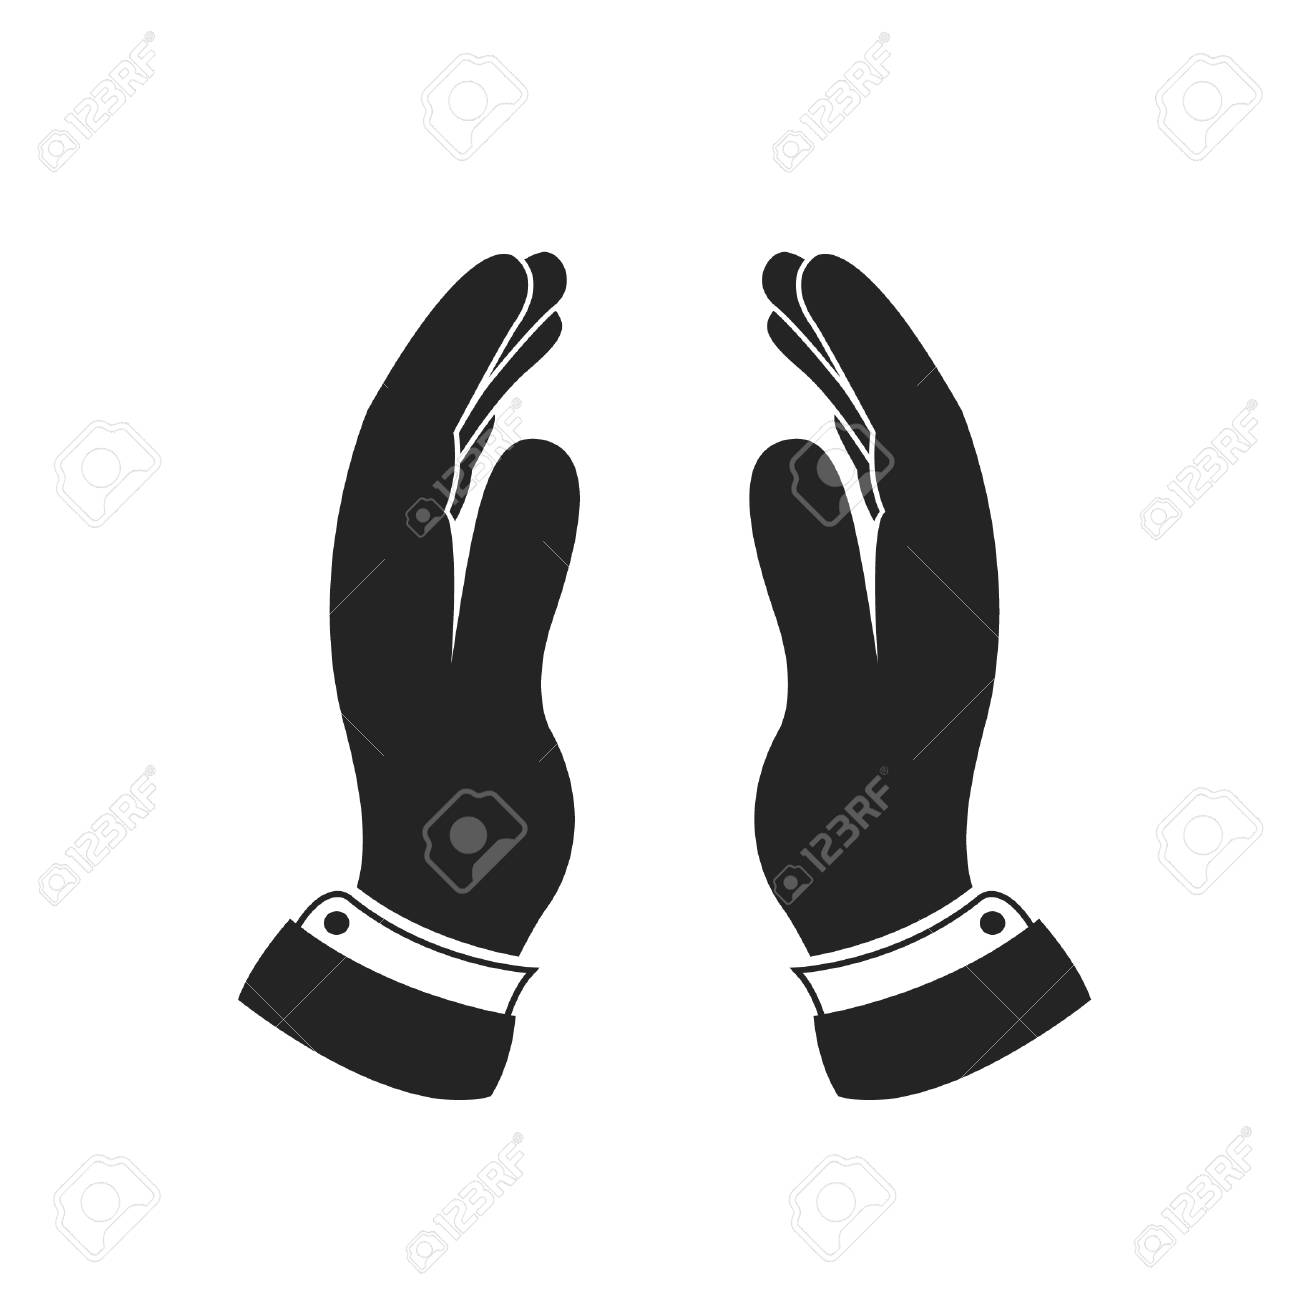 supporting hands icon vector protecting two hands icon royalty